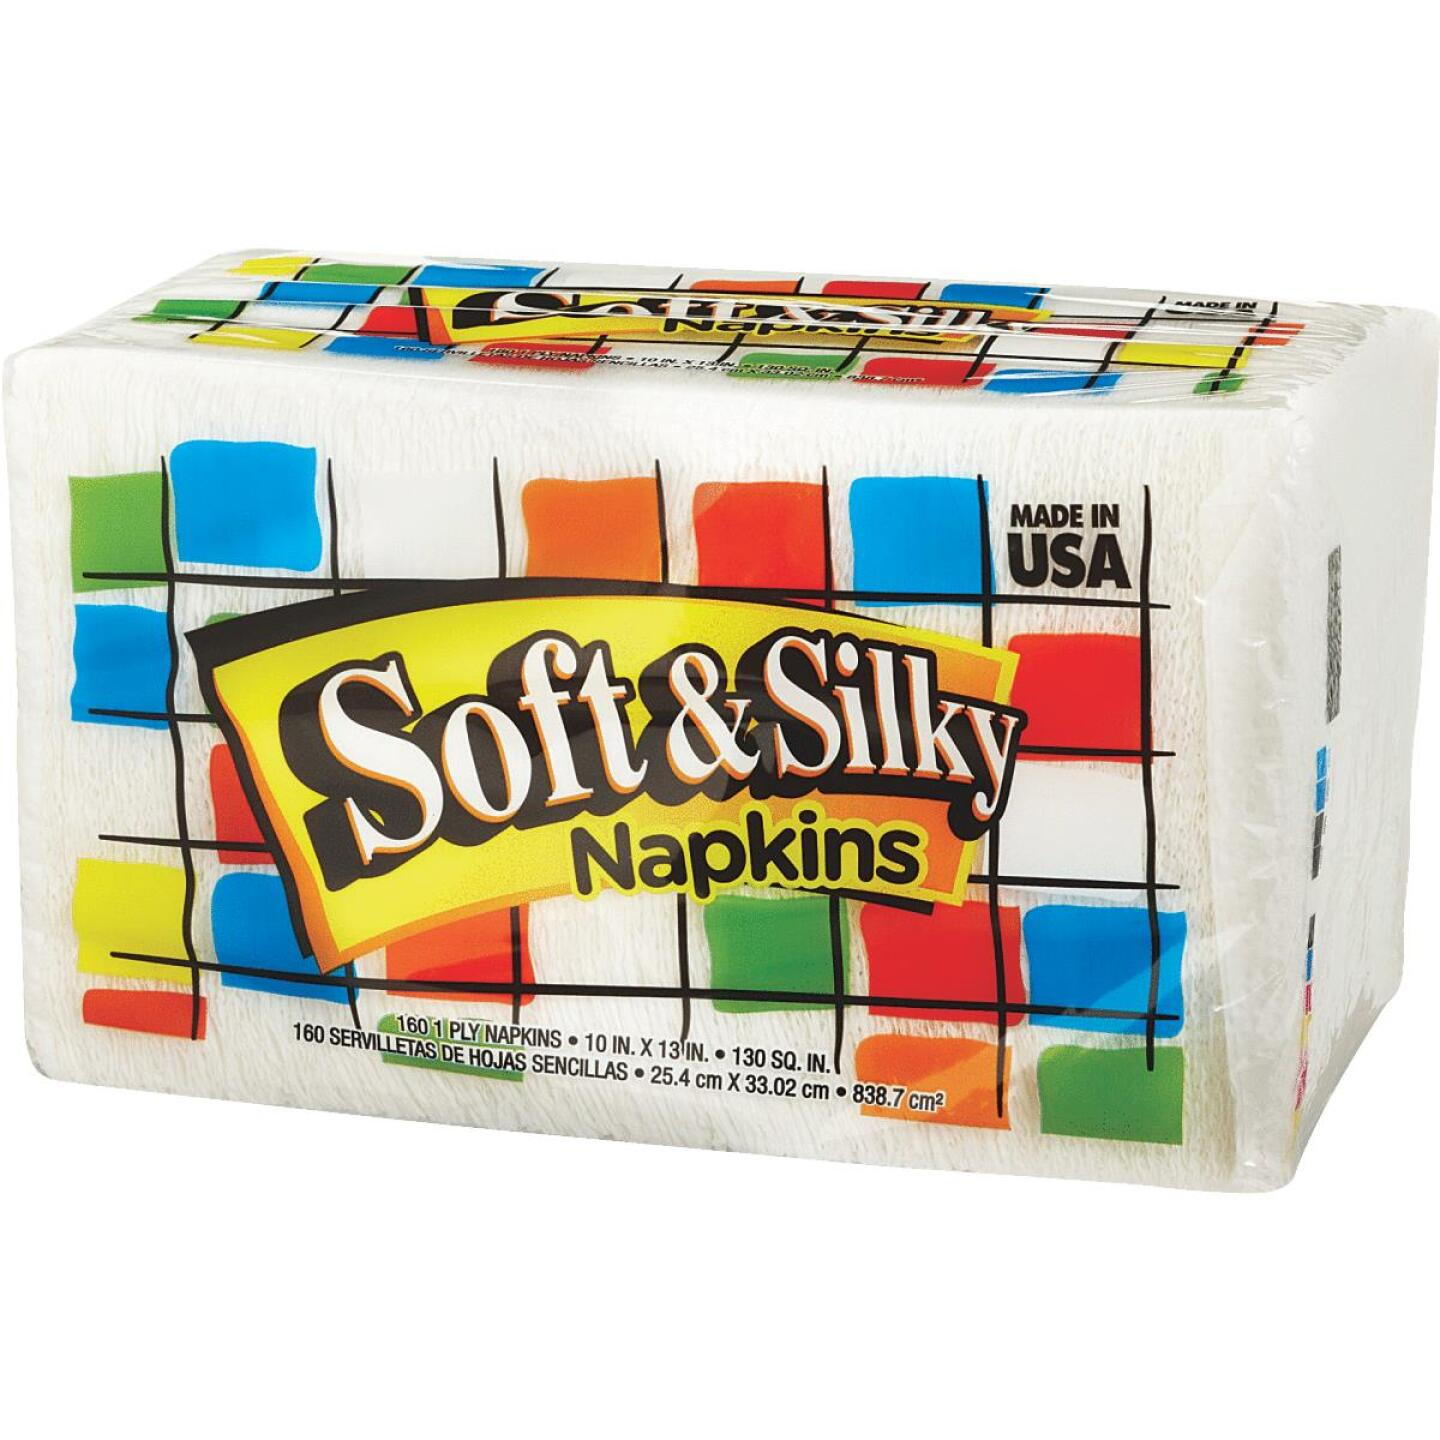 Soft & Silky Paper Napkins (160 Count) Image 4